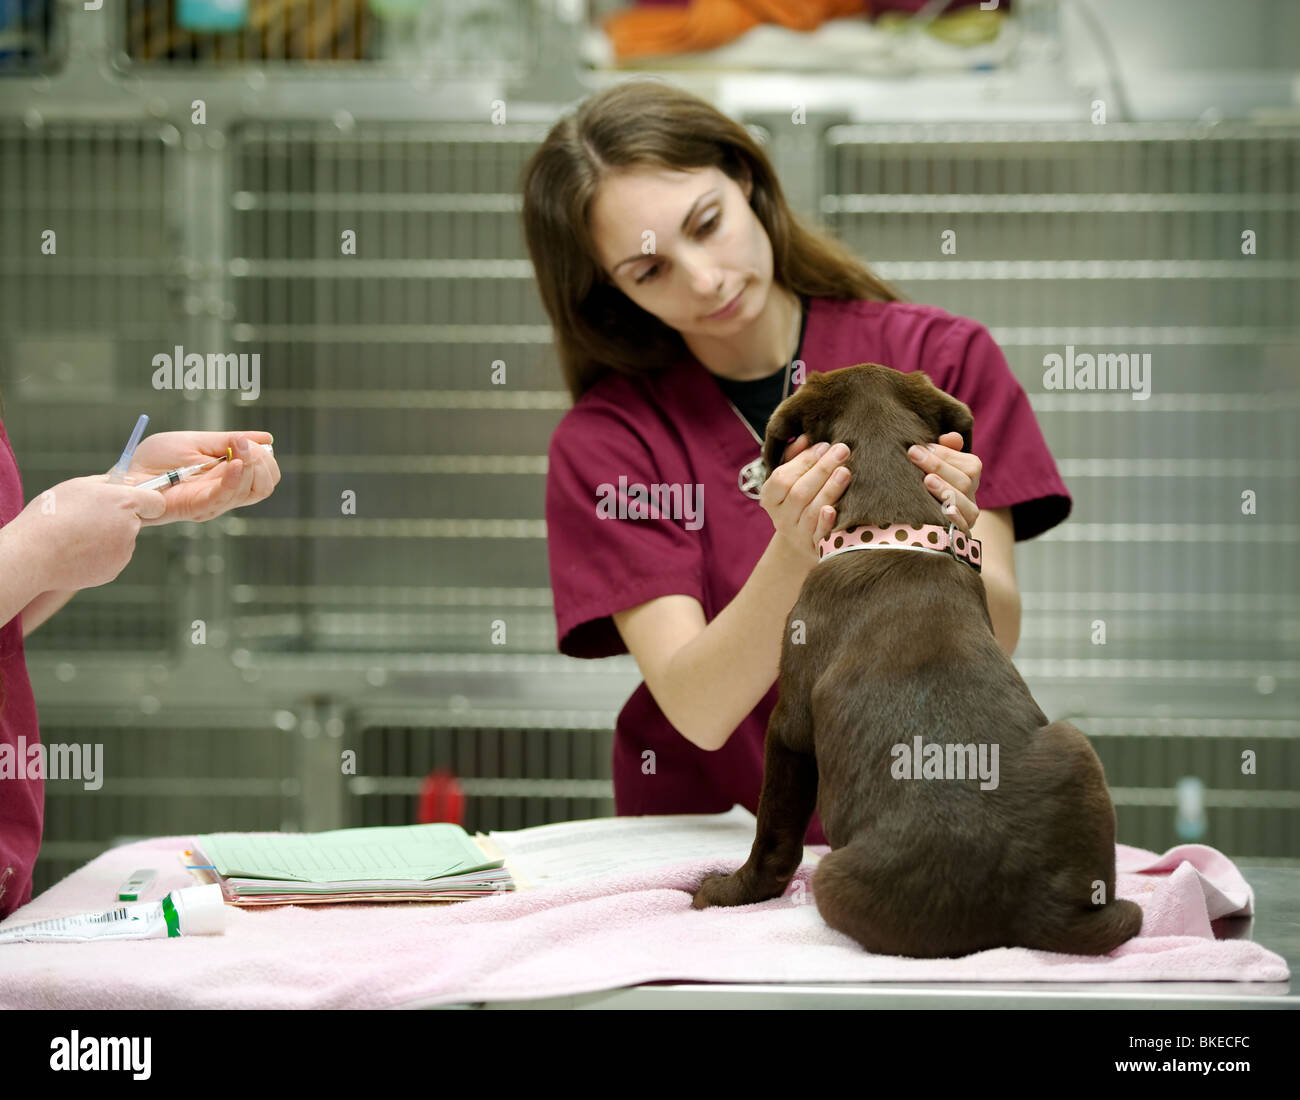 veterinary assistant prepares a vaccine shot - Stock Image